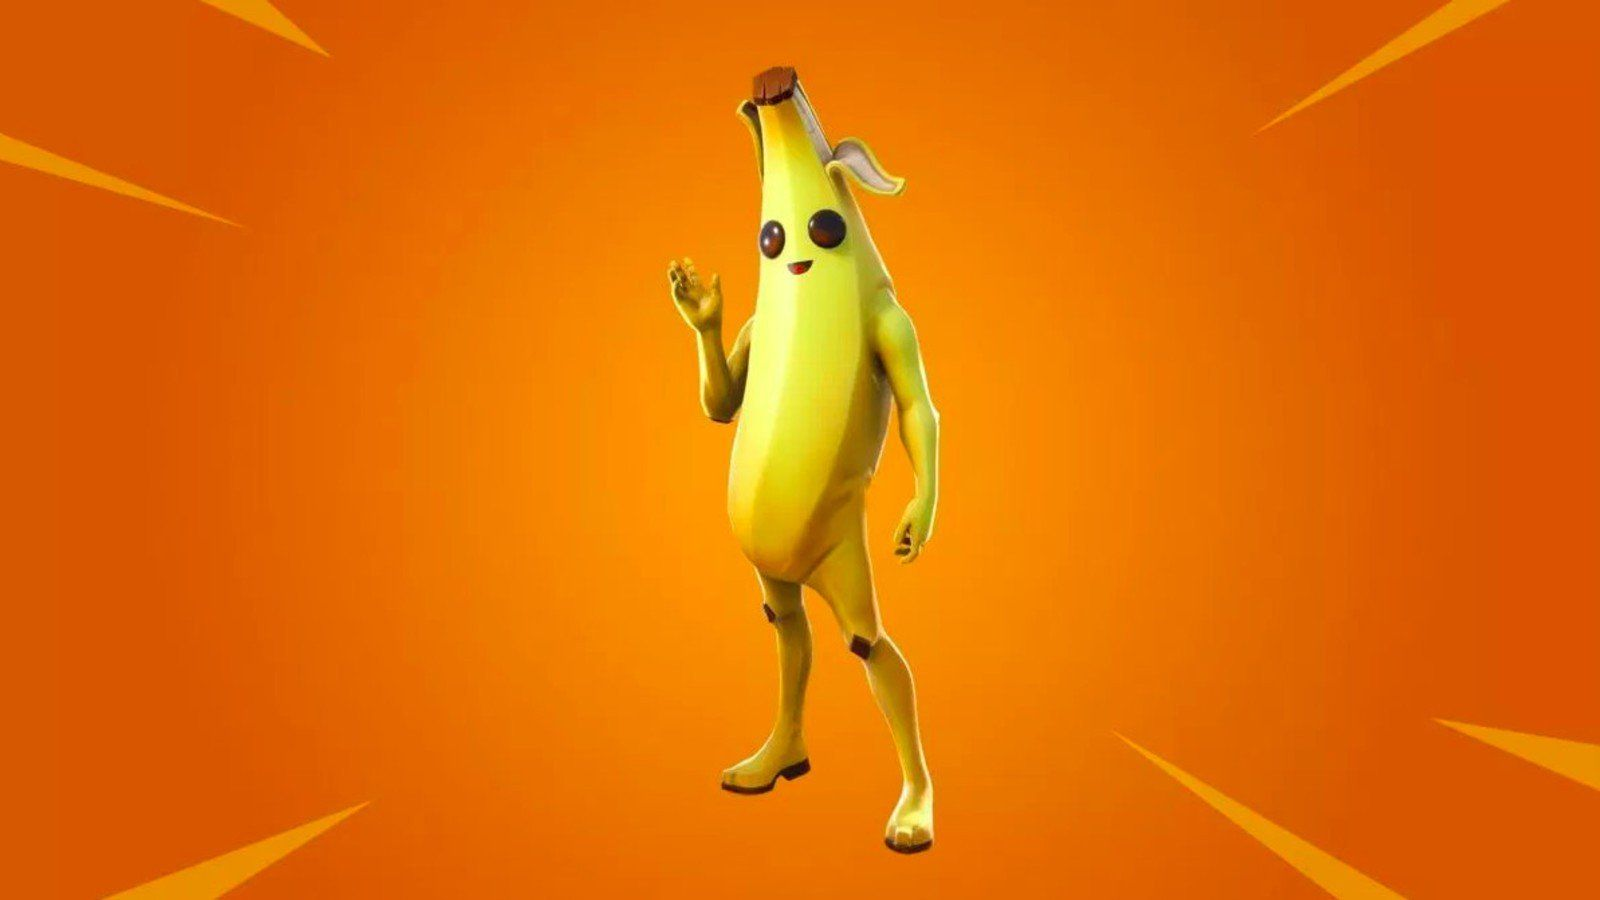 Fortnite Banana Wallpapers Top Free Fortnite Banana Backgrounds Wallpaperaccess